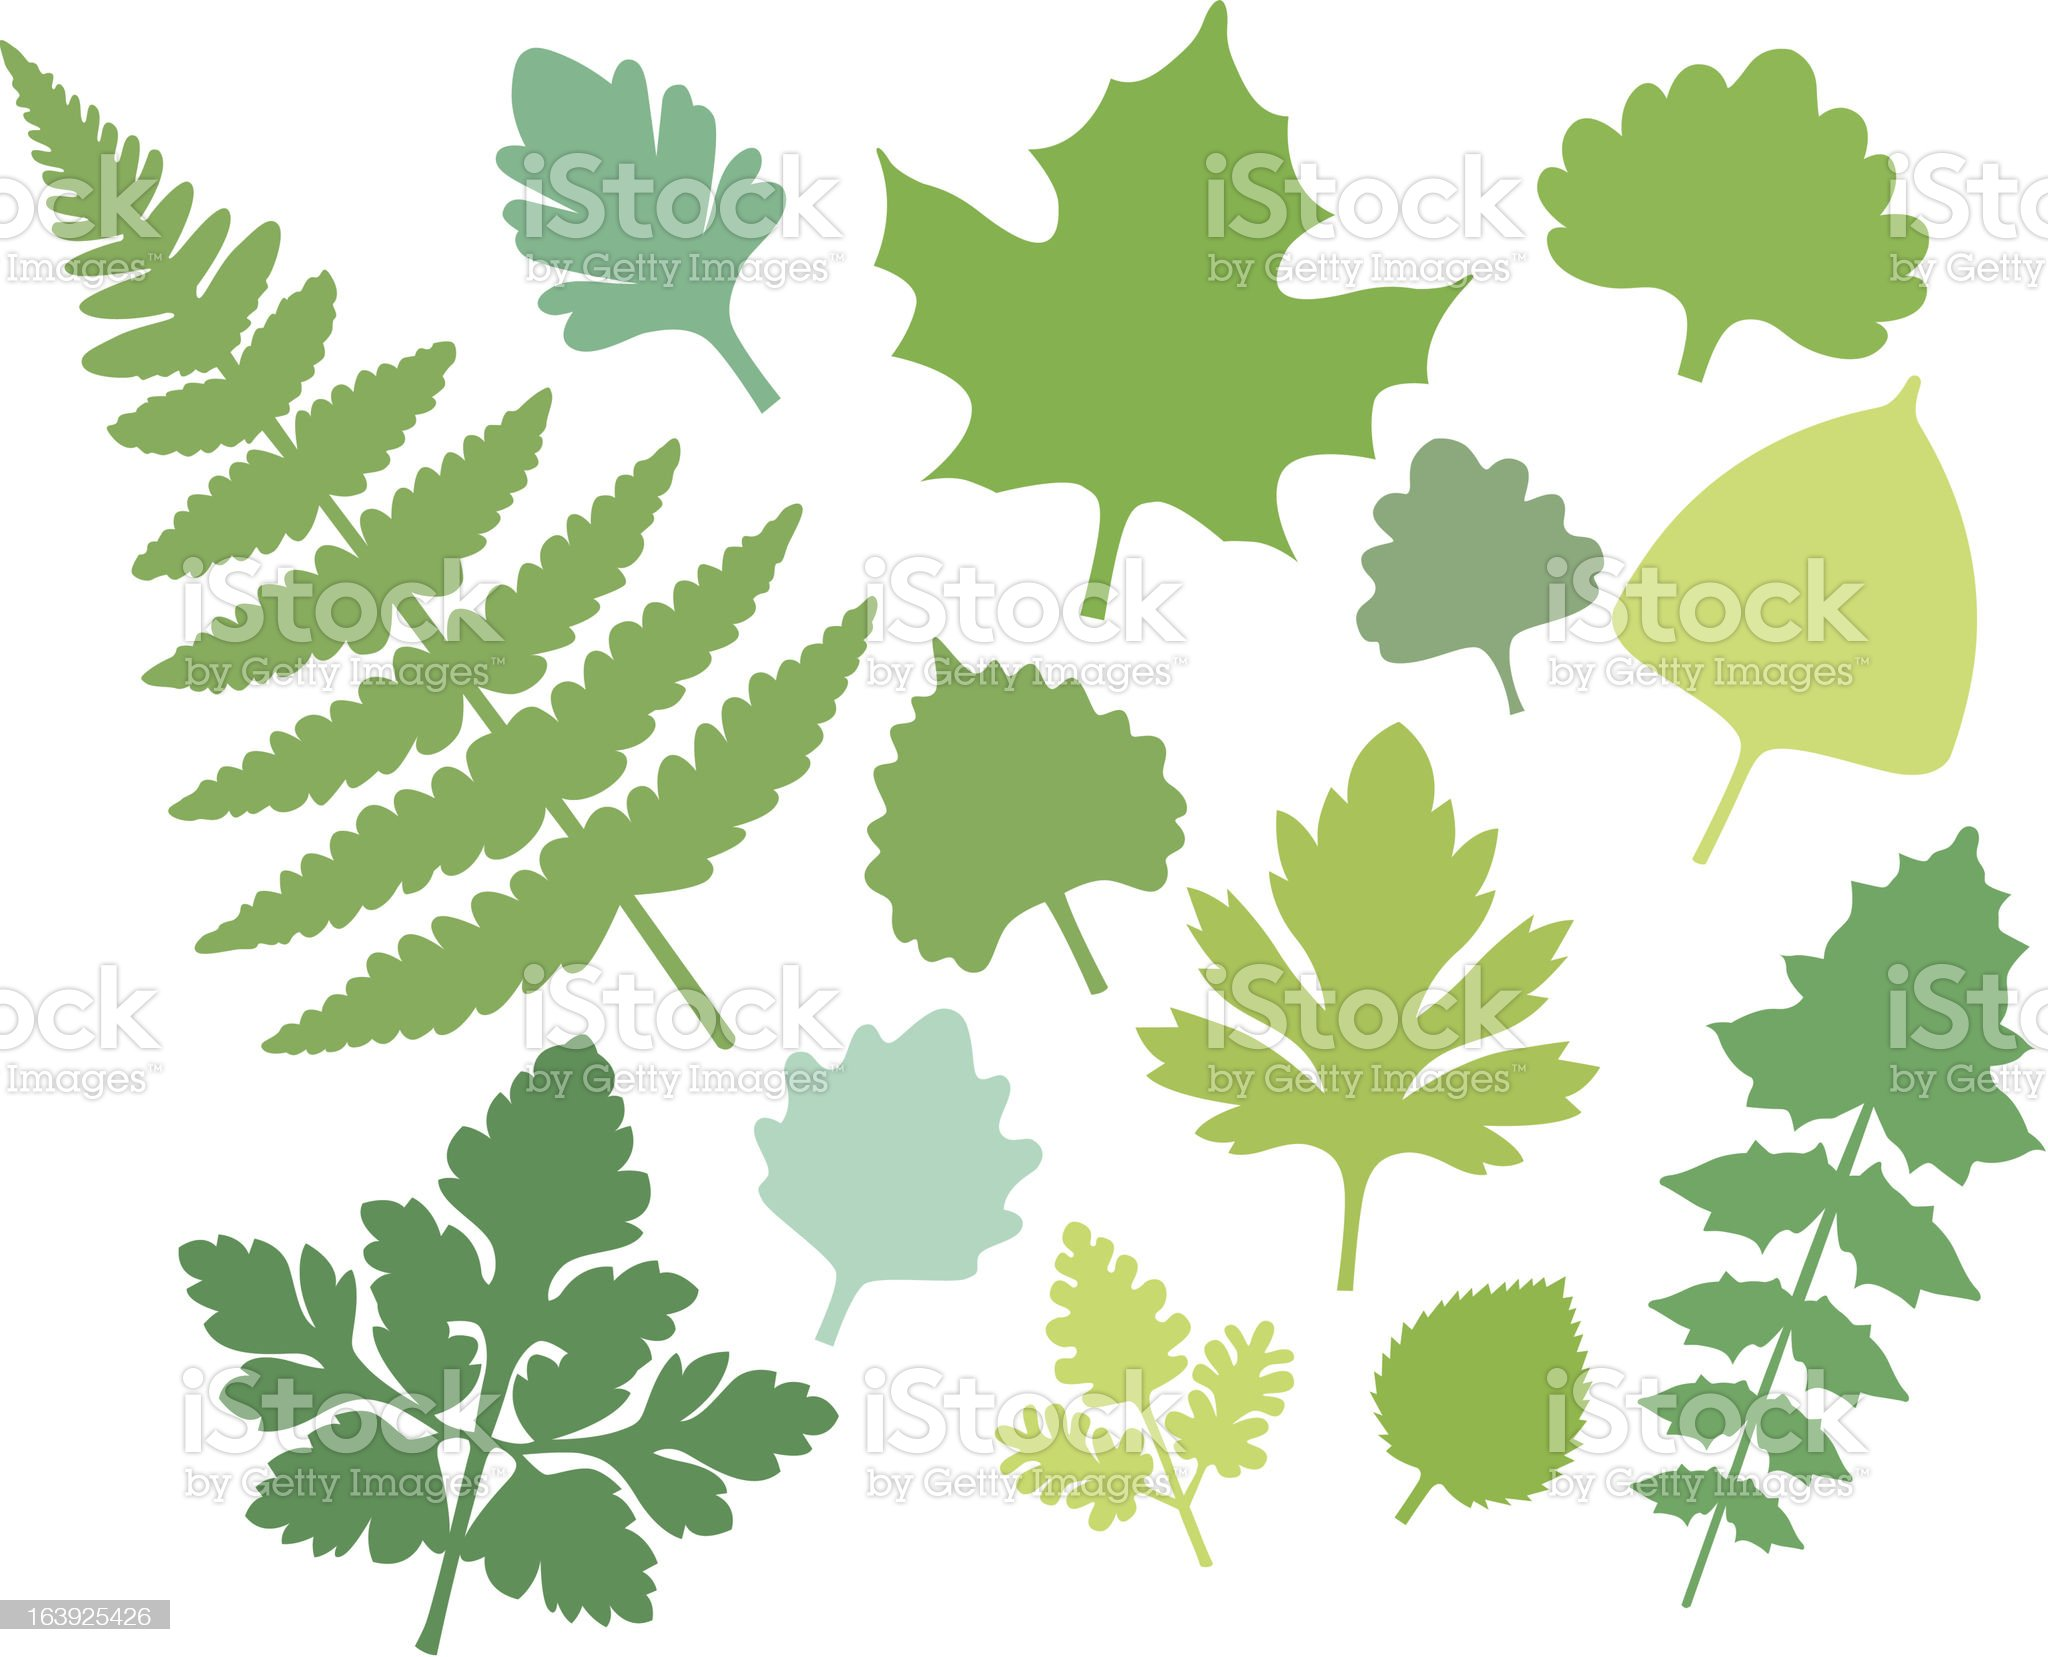 more green Leaf shapes (IV) royalty-free stock vector art